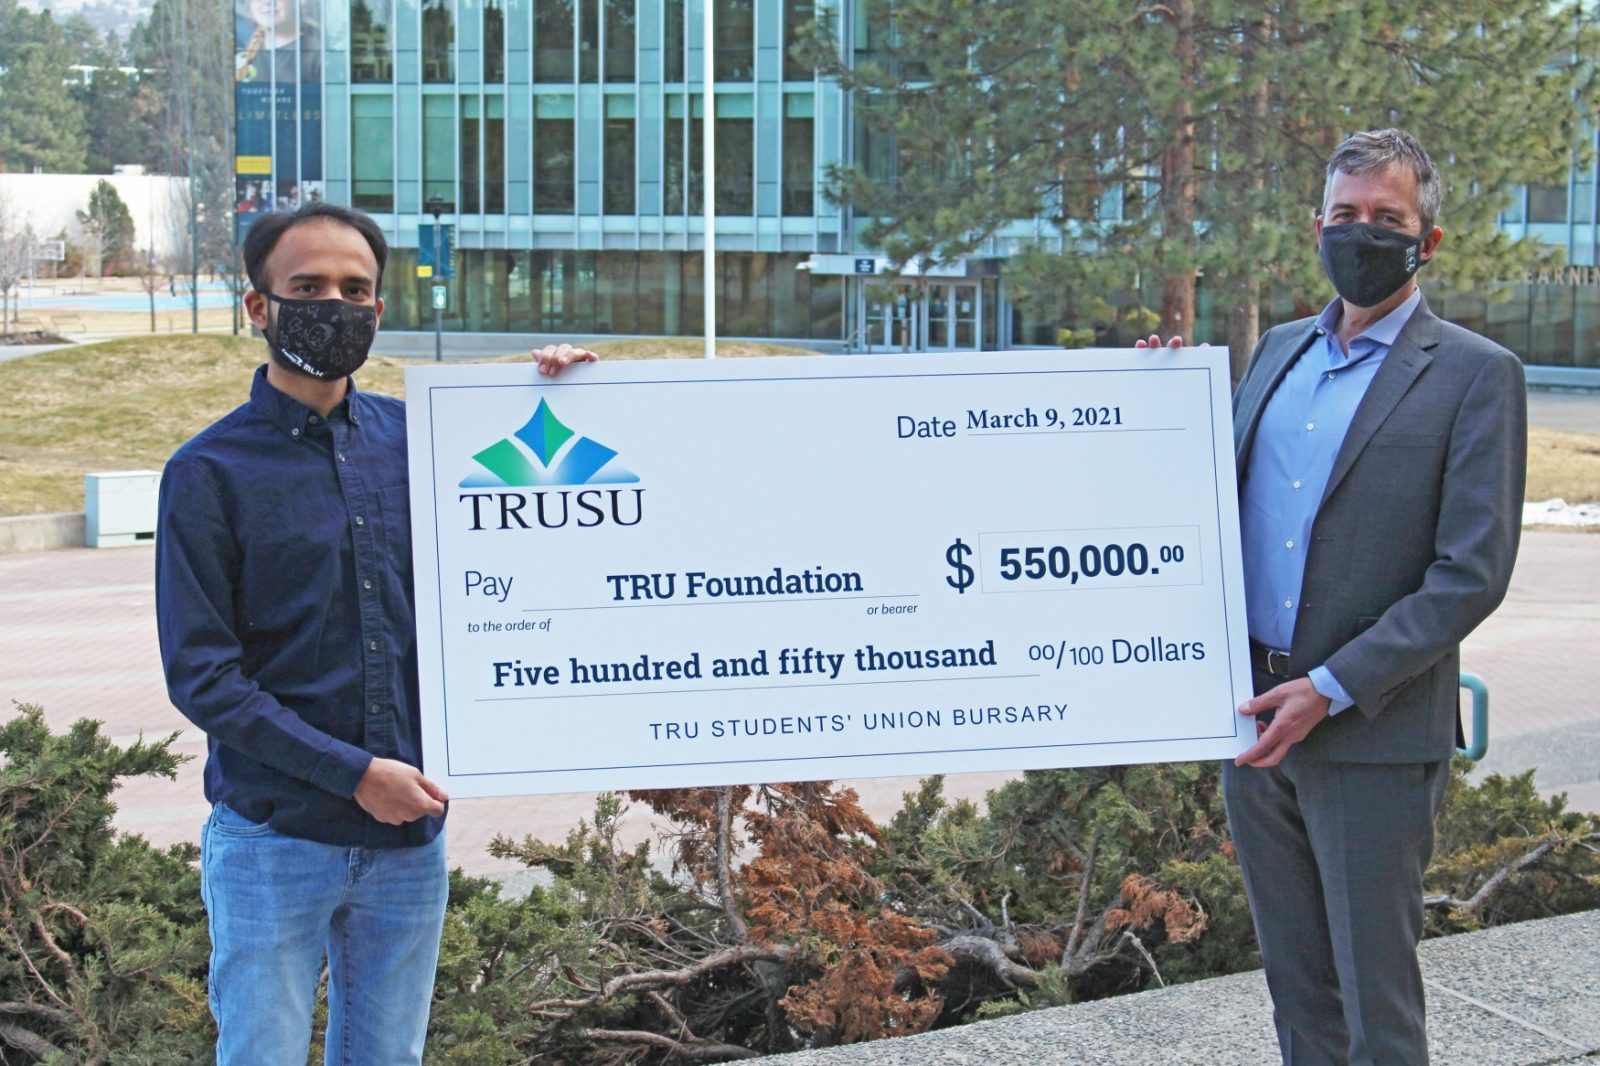 TRUSU Vice President Services Dipak Parmar and TRU Vice President University Relations Brian Daly.